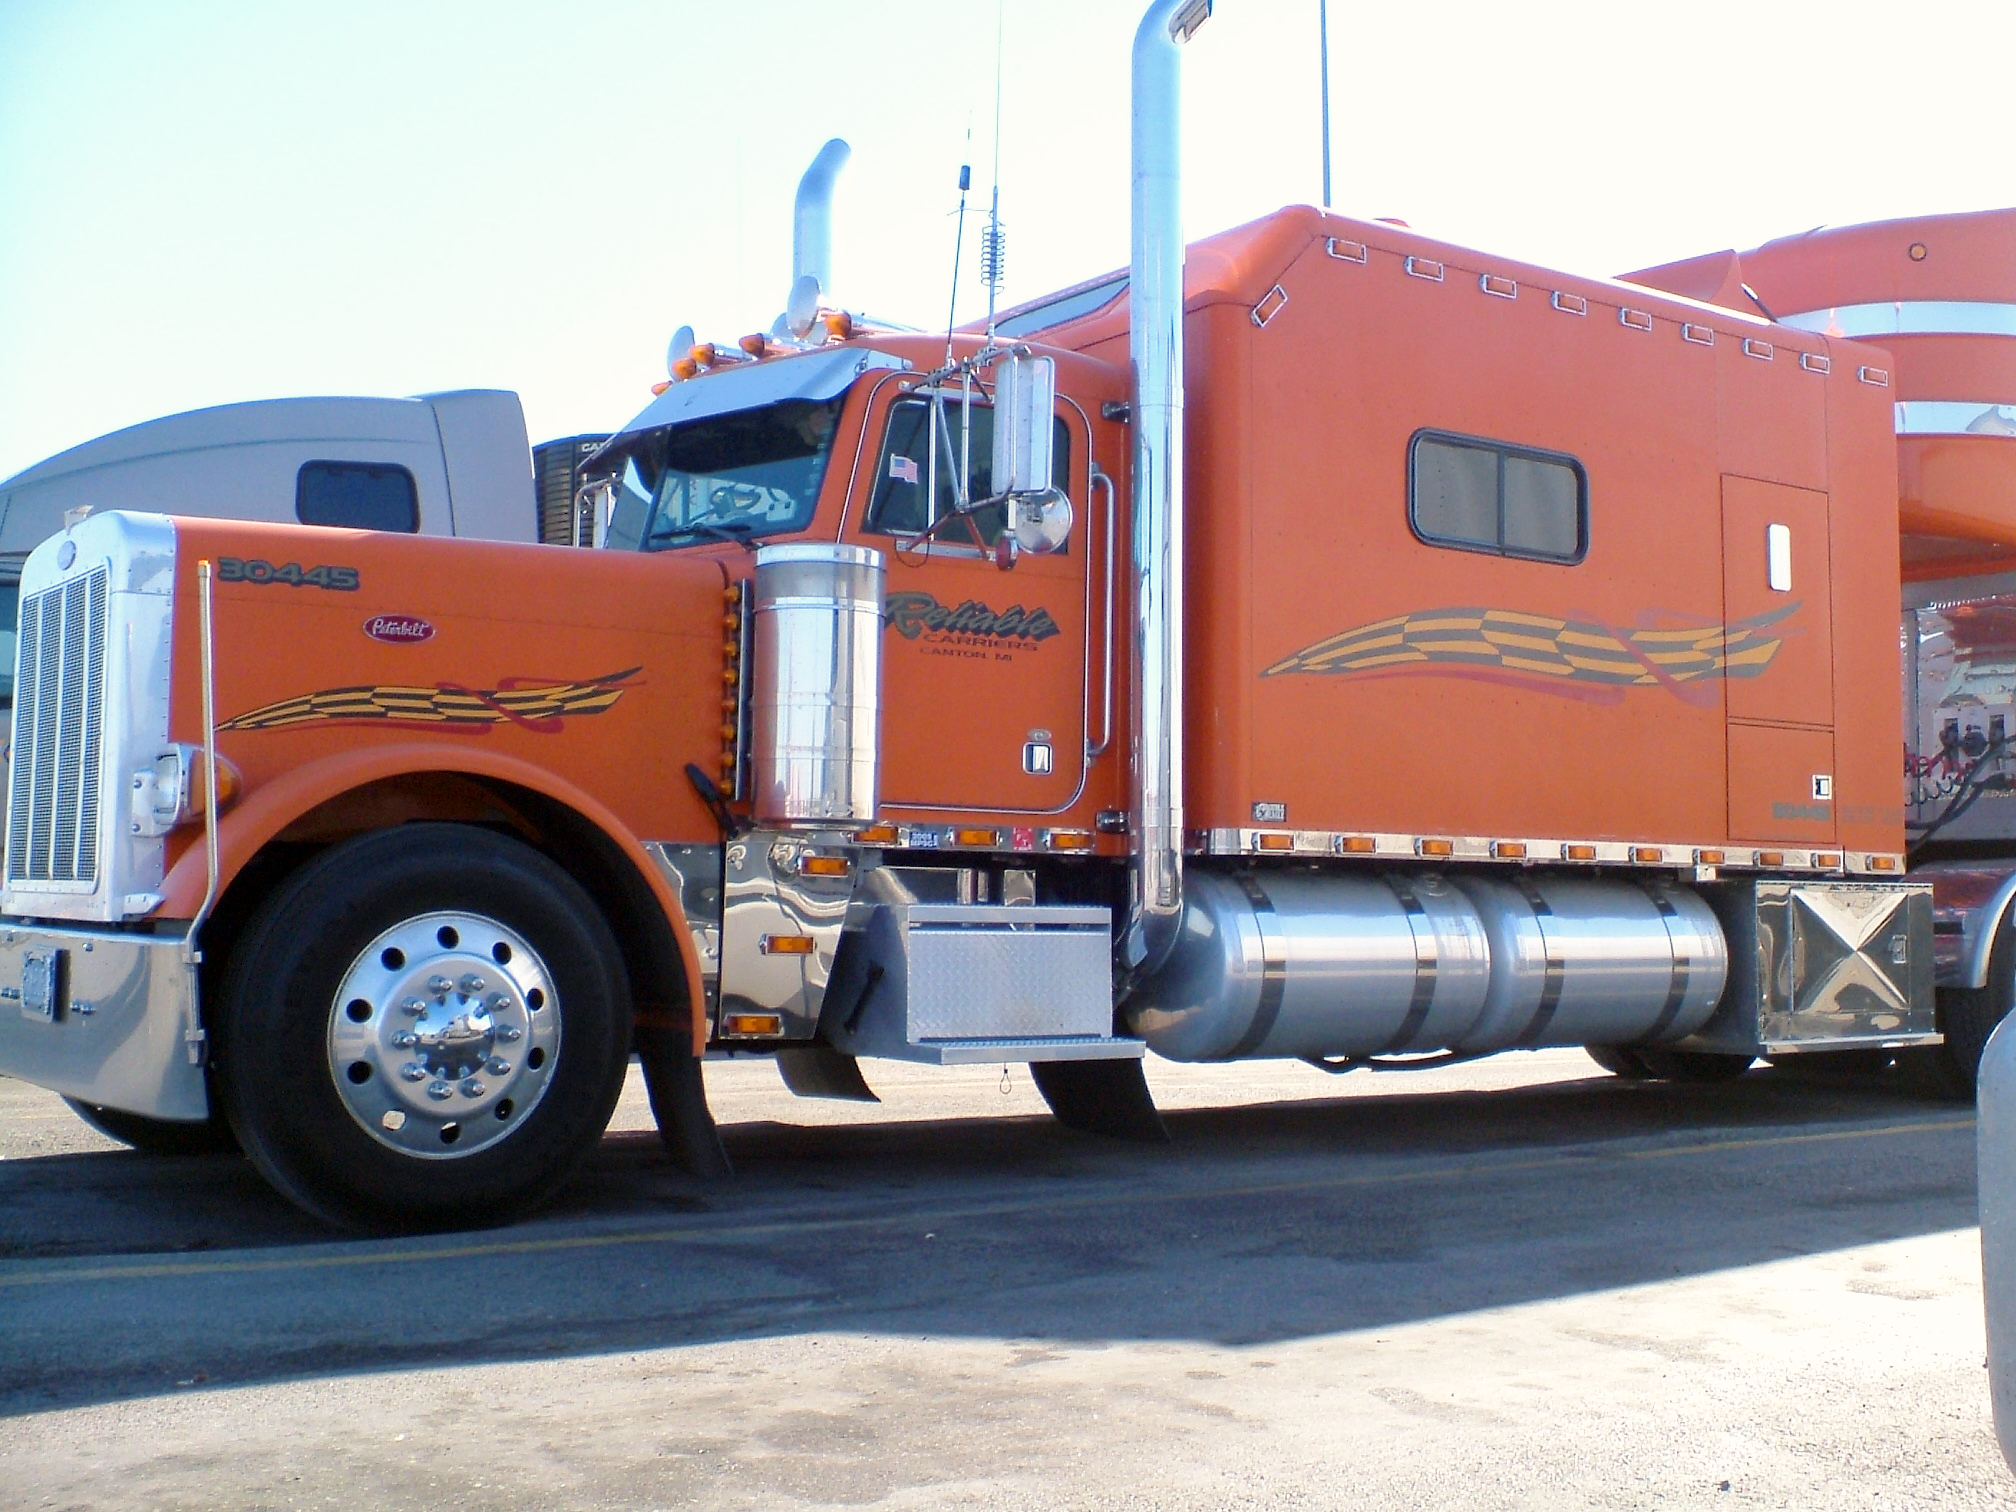 Custom build Peterbilt truck, not mine :(